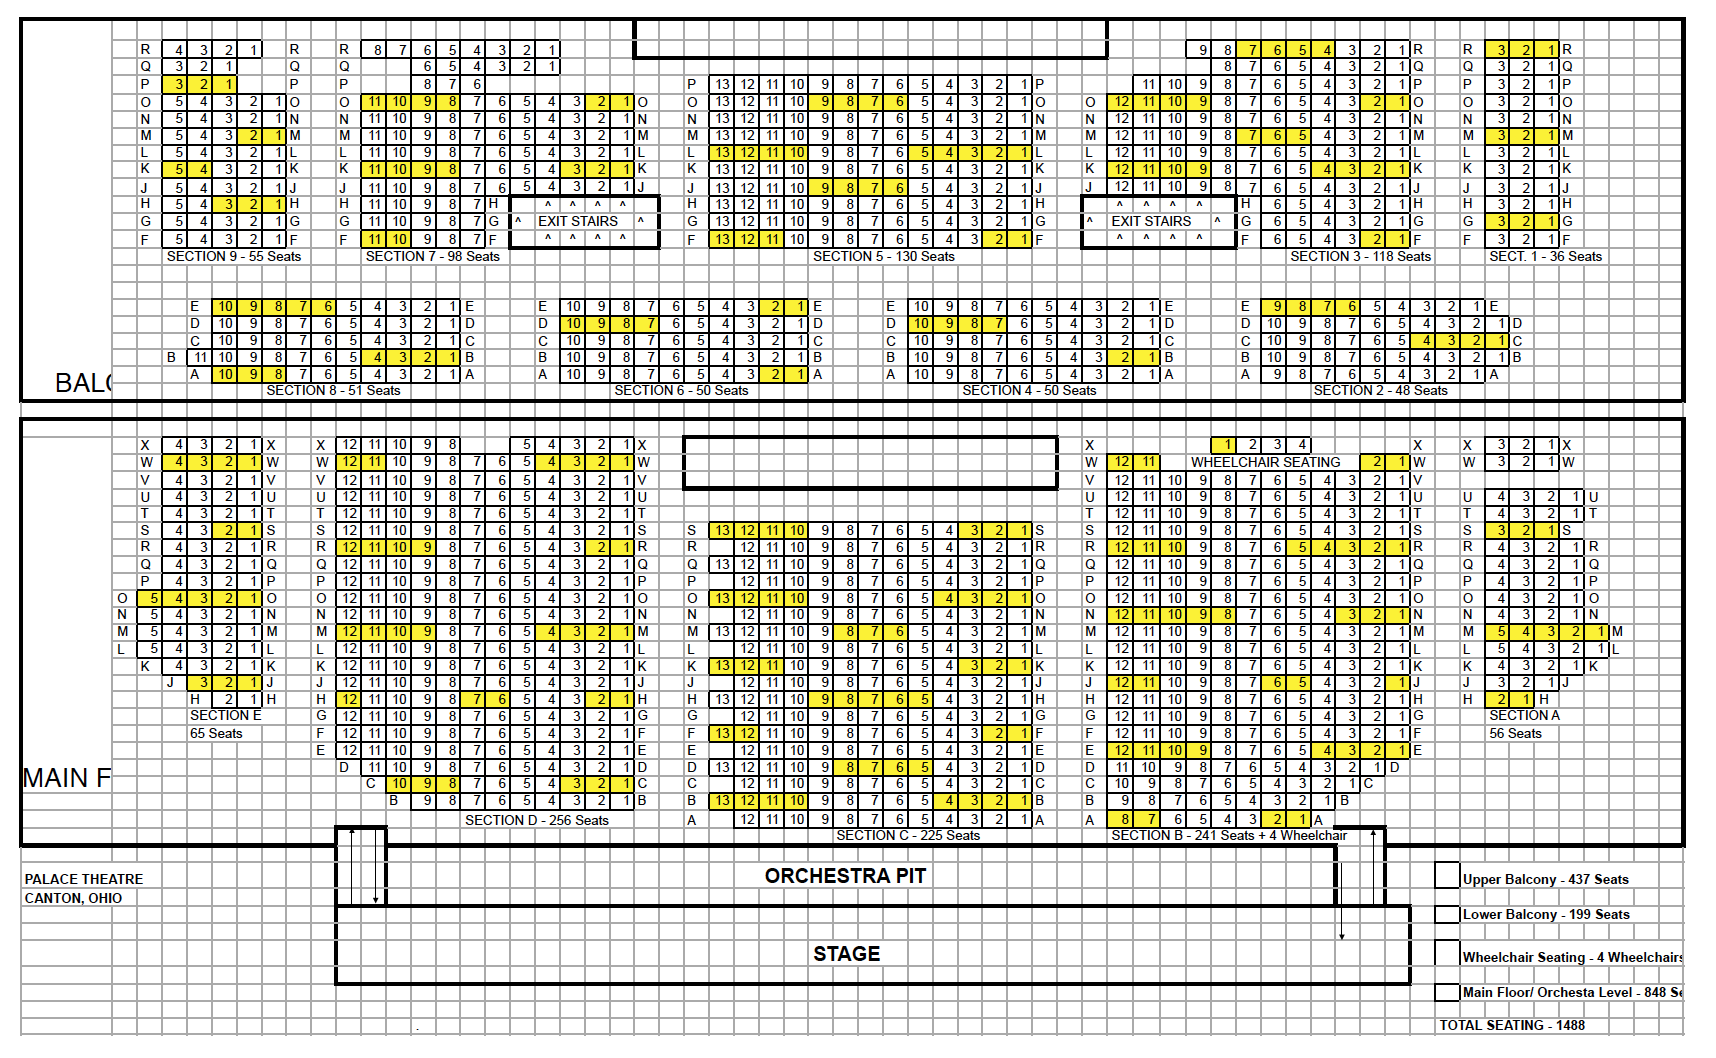 Canton Palace Theatre COVID-19 Seating Chart